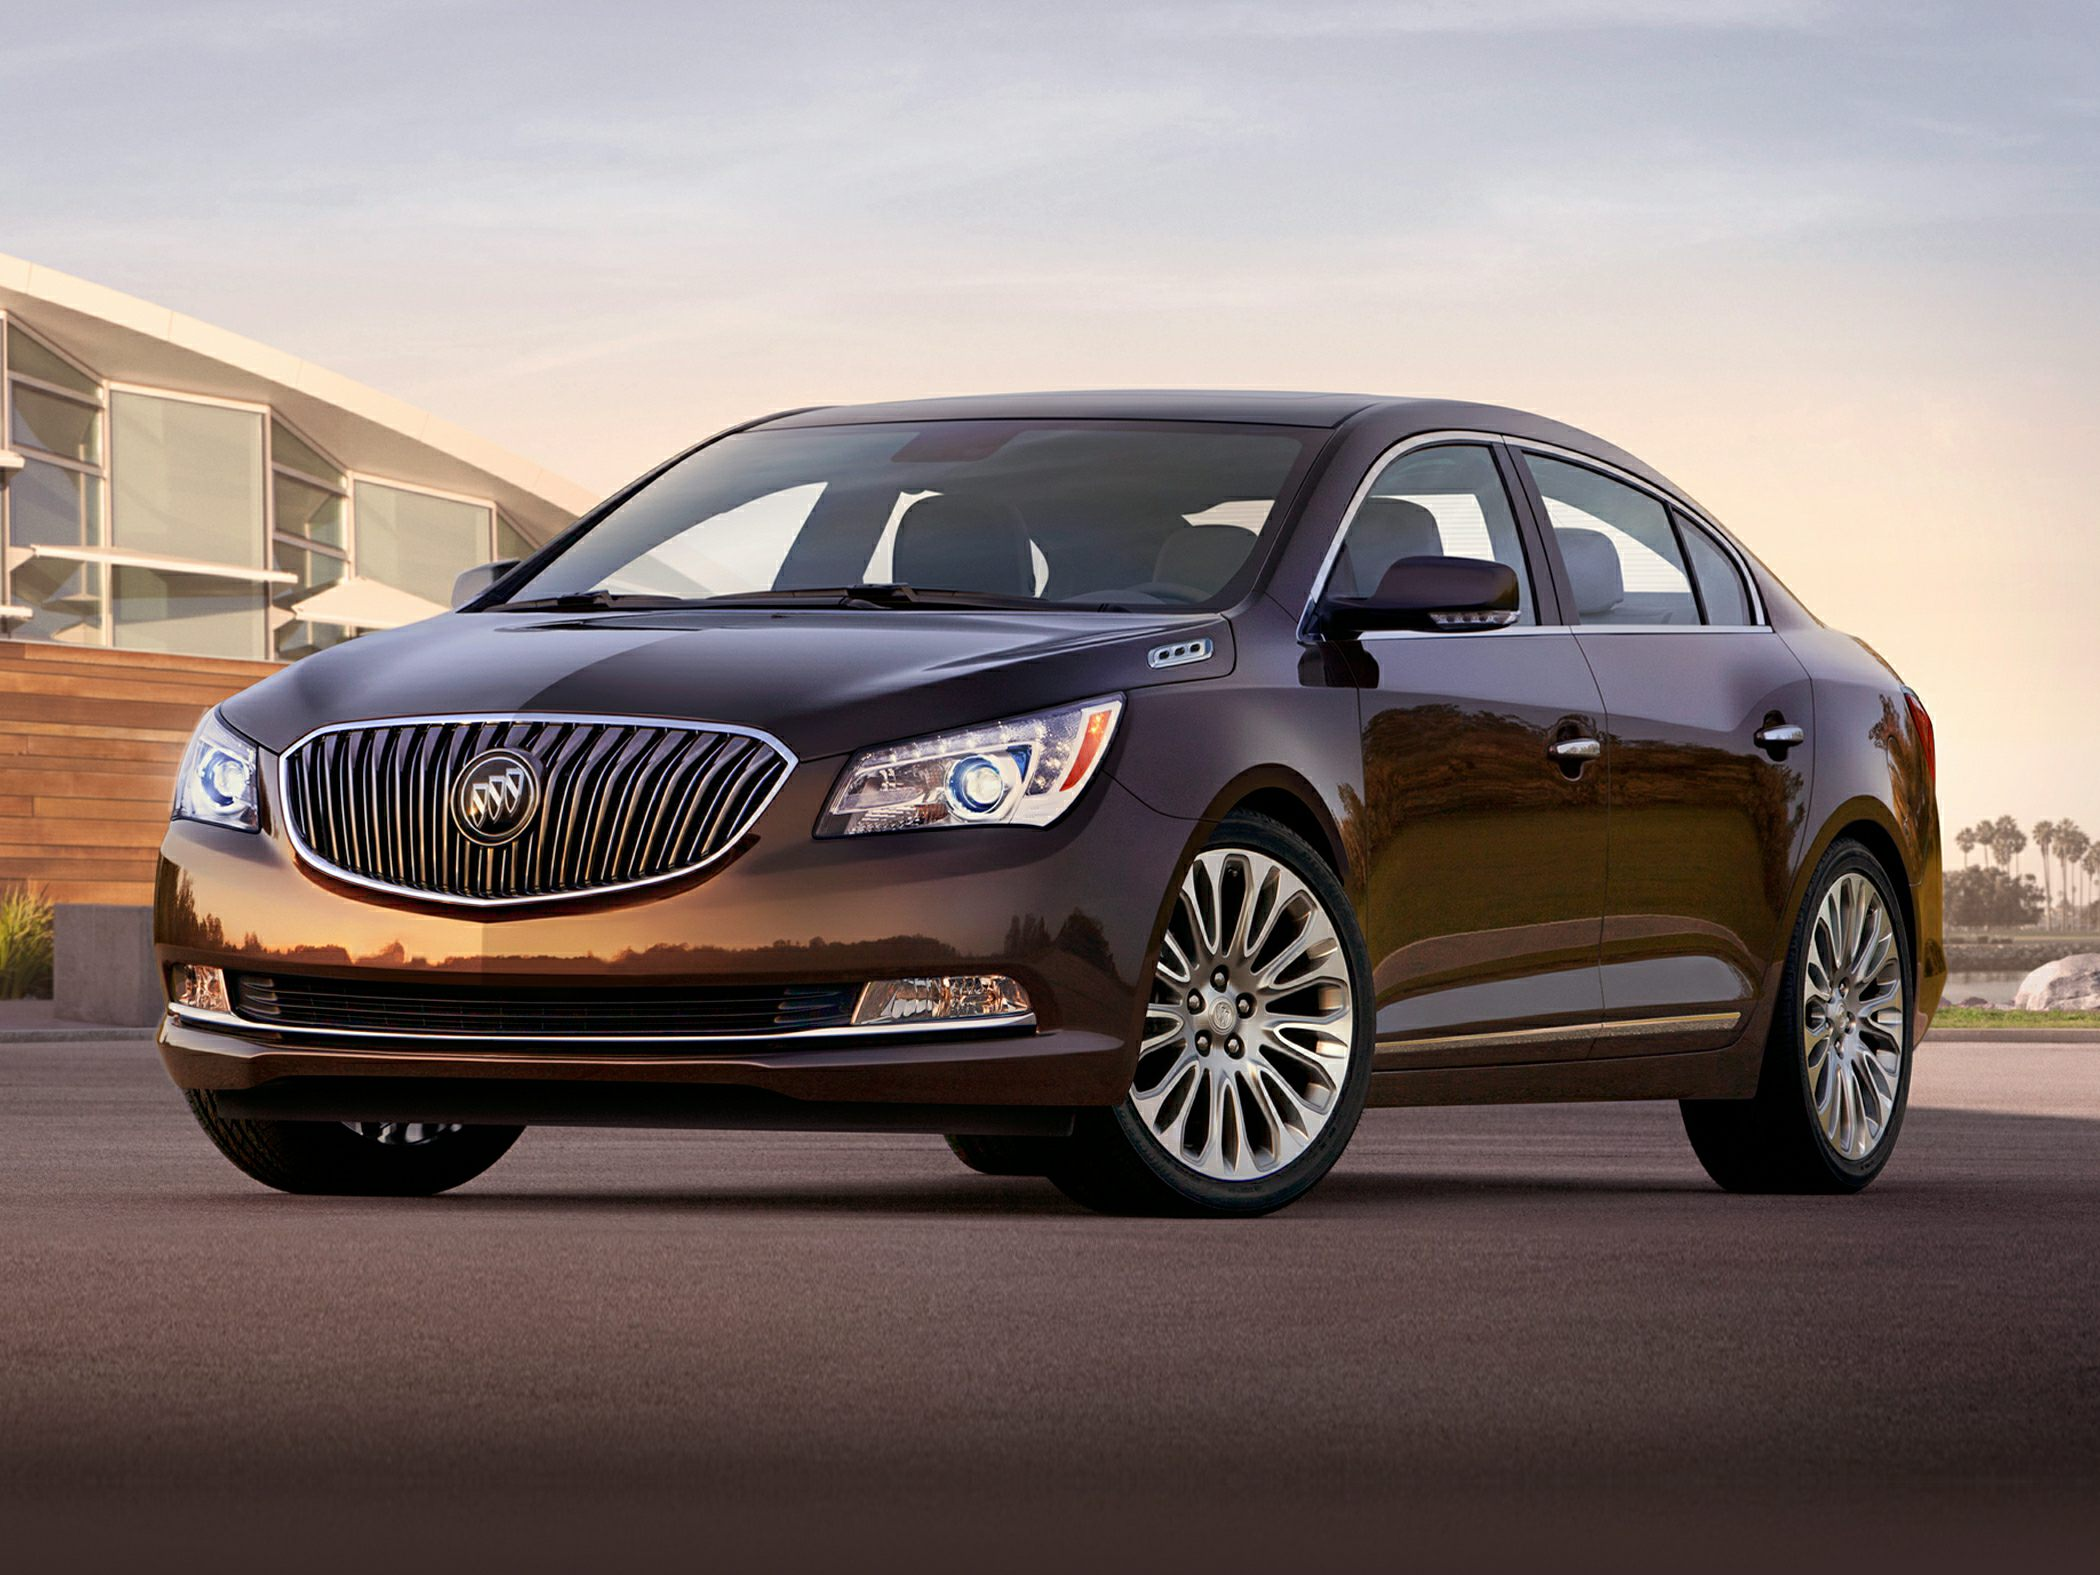 2014 Buick LaCrosse Glam